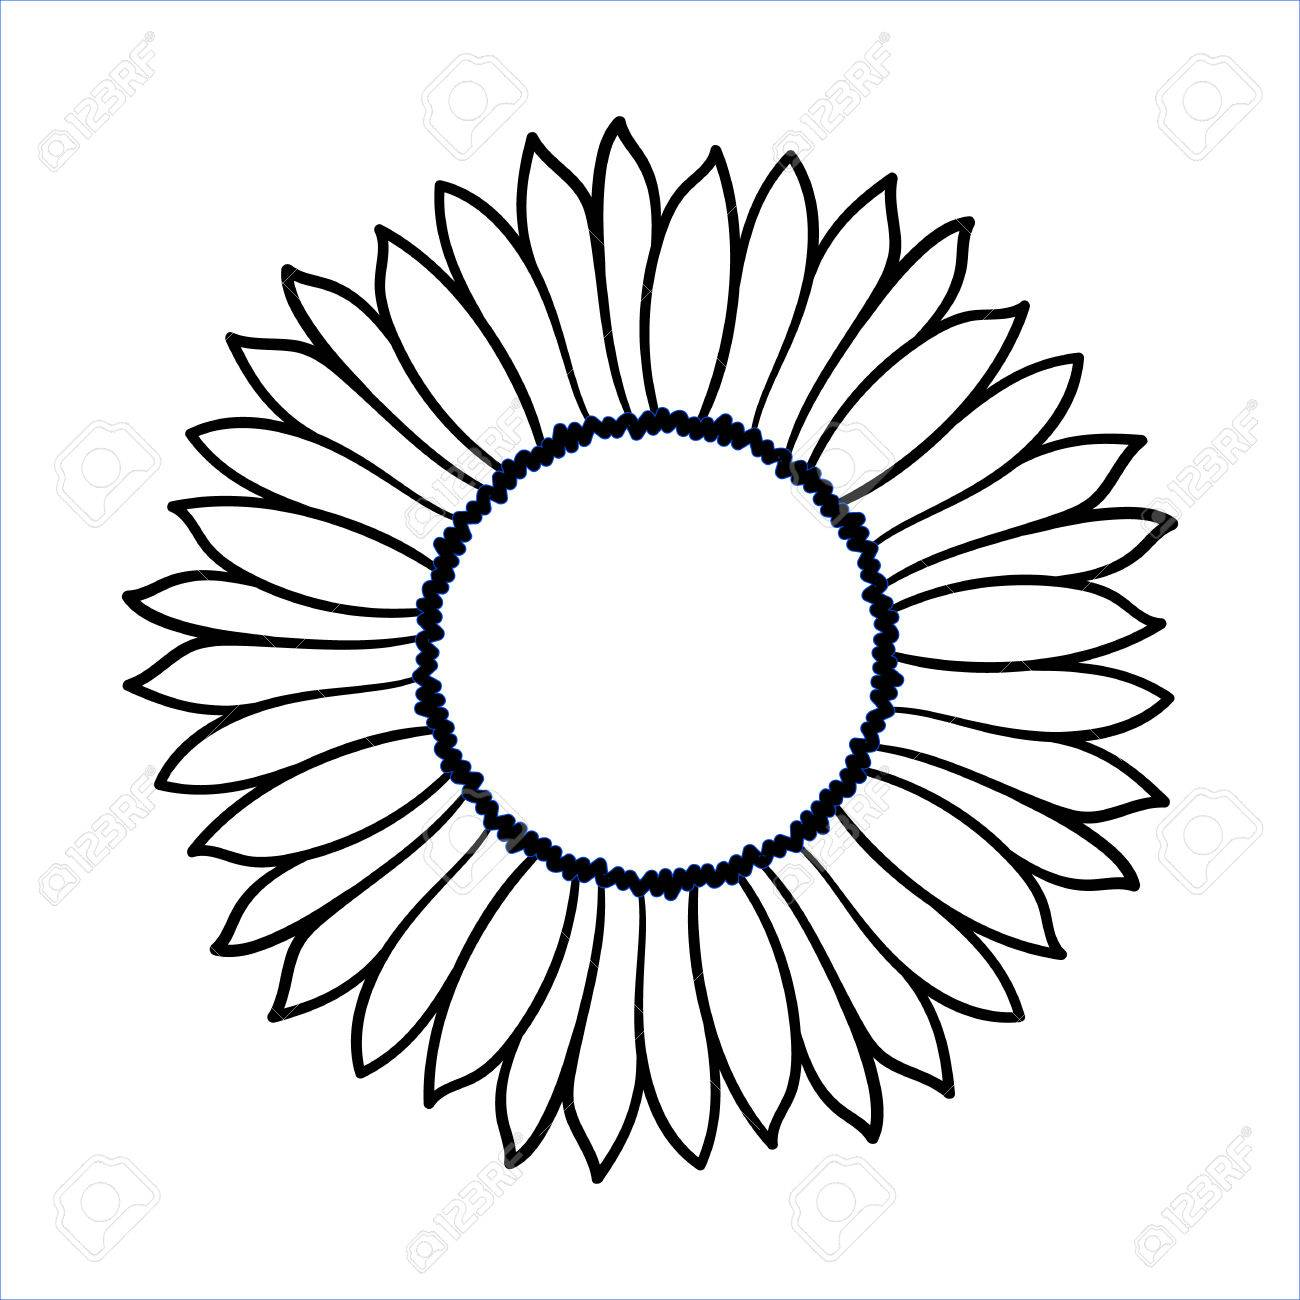 Black And White Sunflower Drawing at GetDrawings.com | Free for ... for Clipart Sunflower Black And White  166kxo